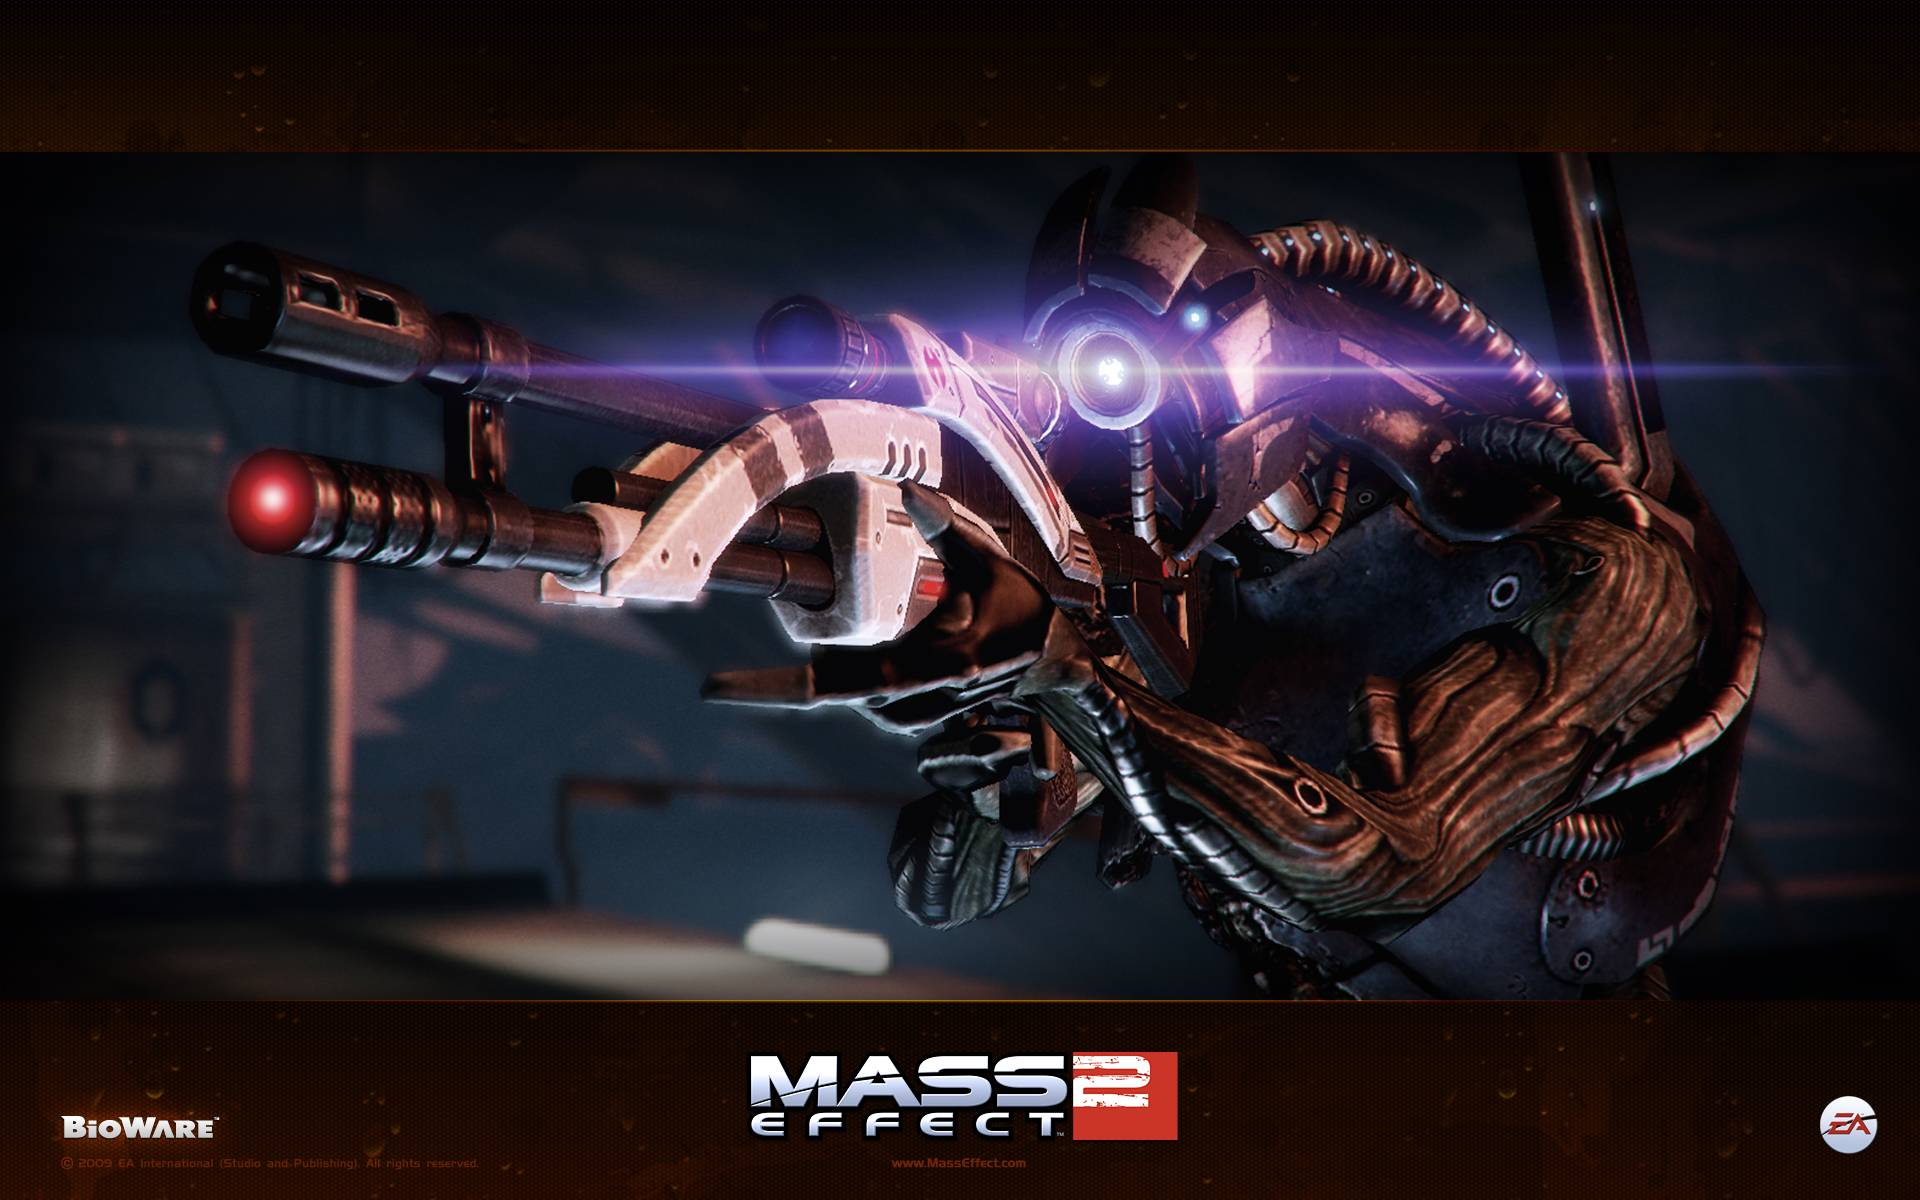 Mass Effect 2 PS3 Wallpapers in HD GamingBoltcom Video Game News 1920x1200